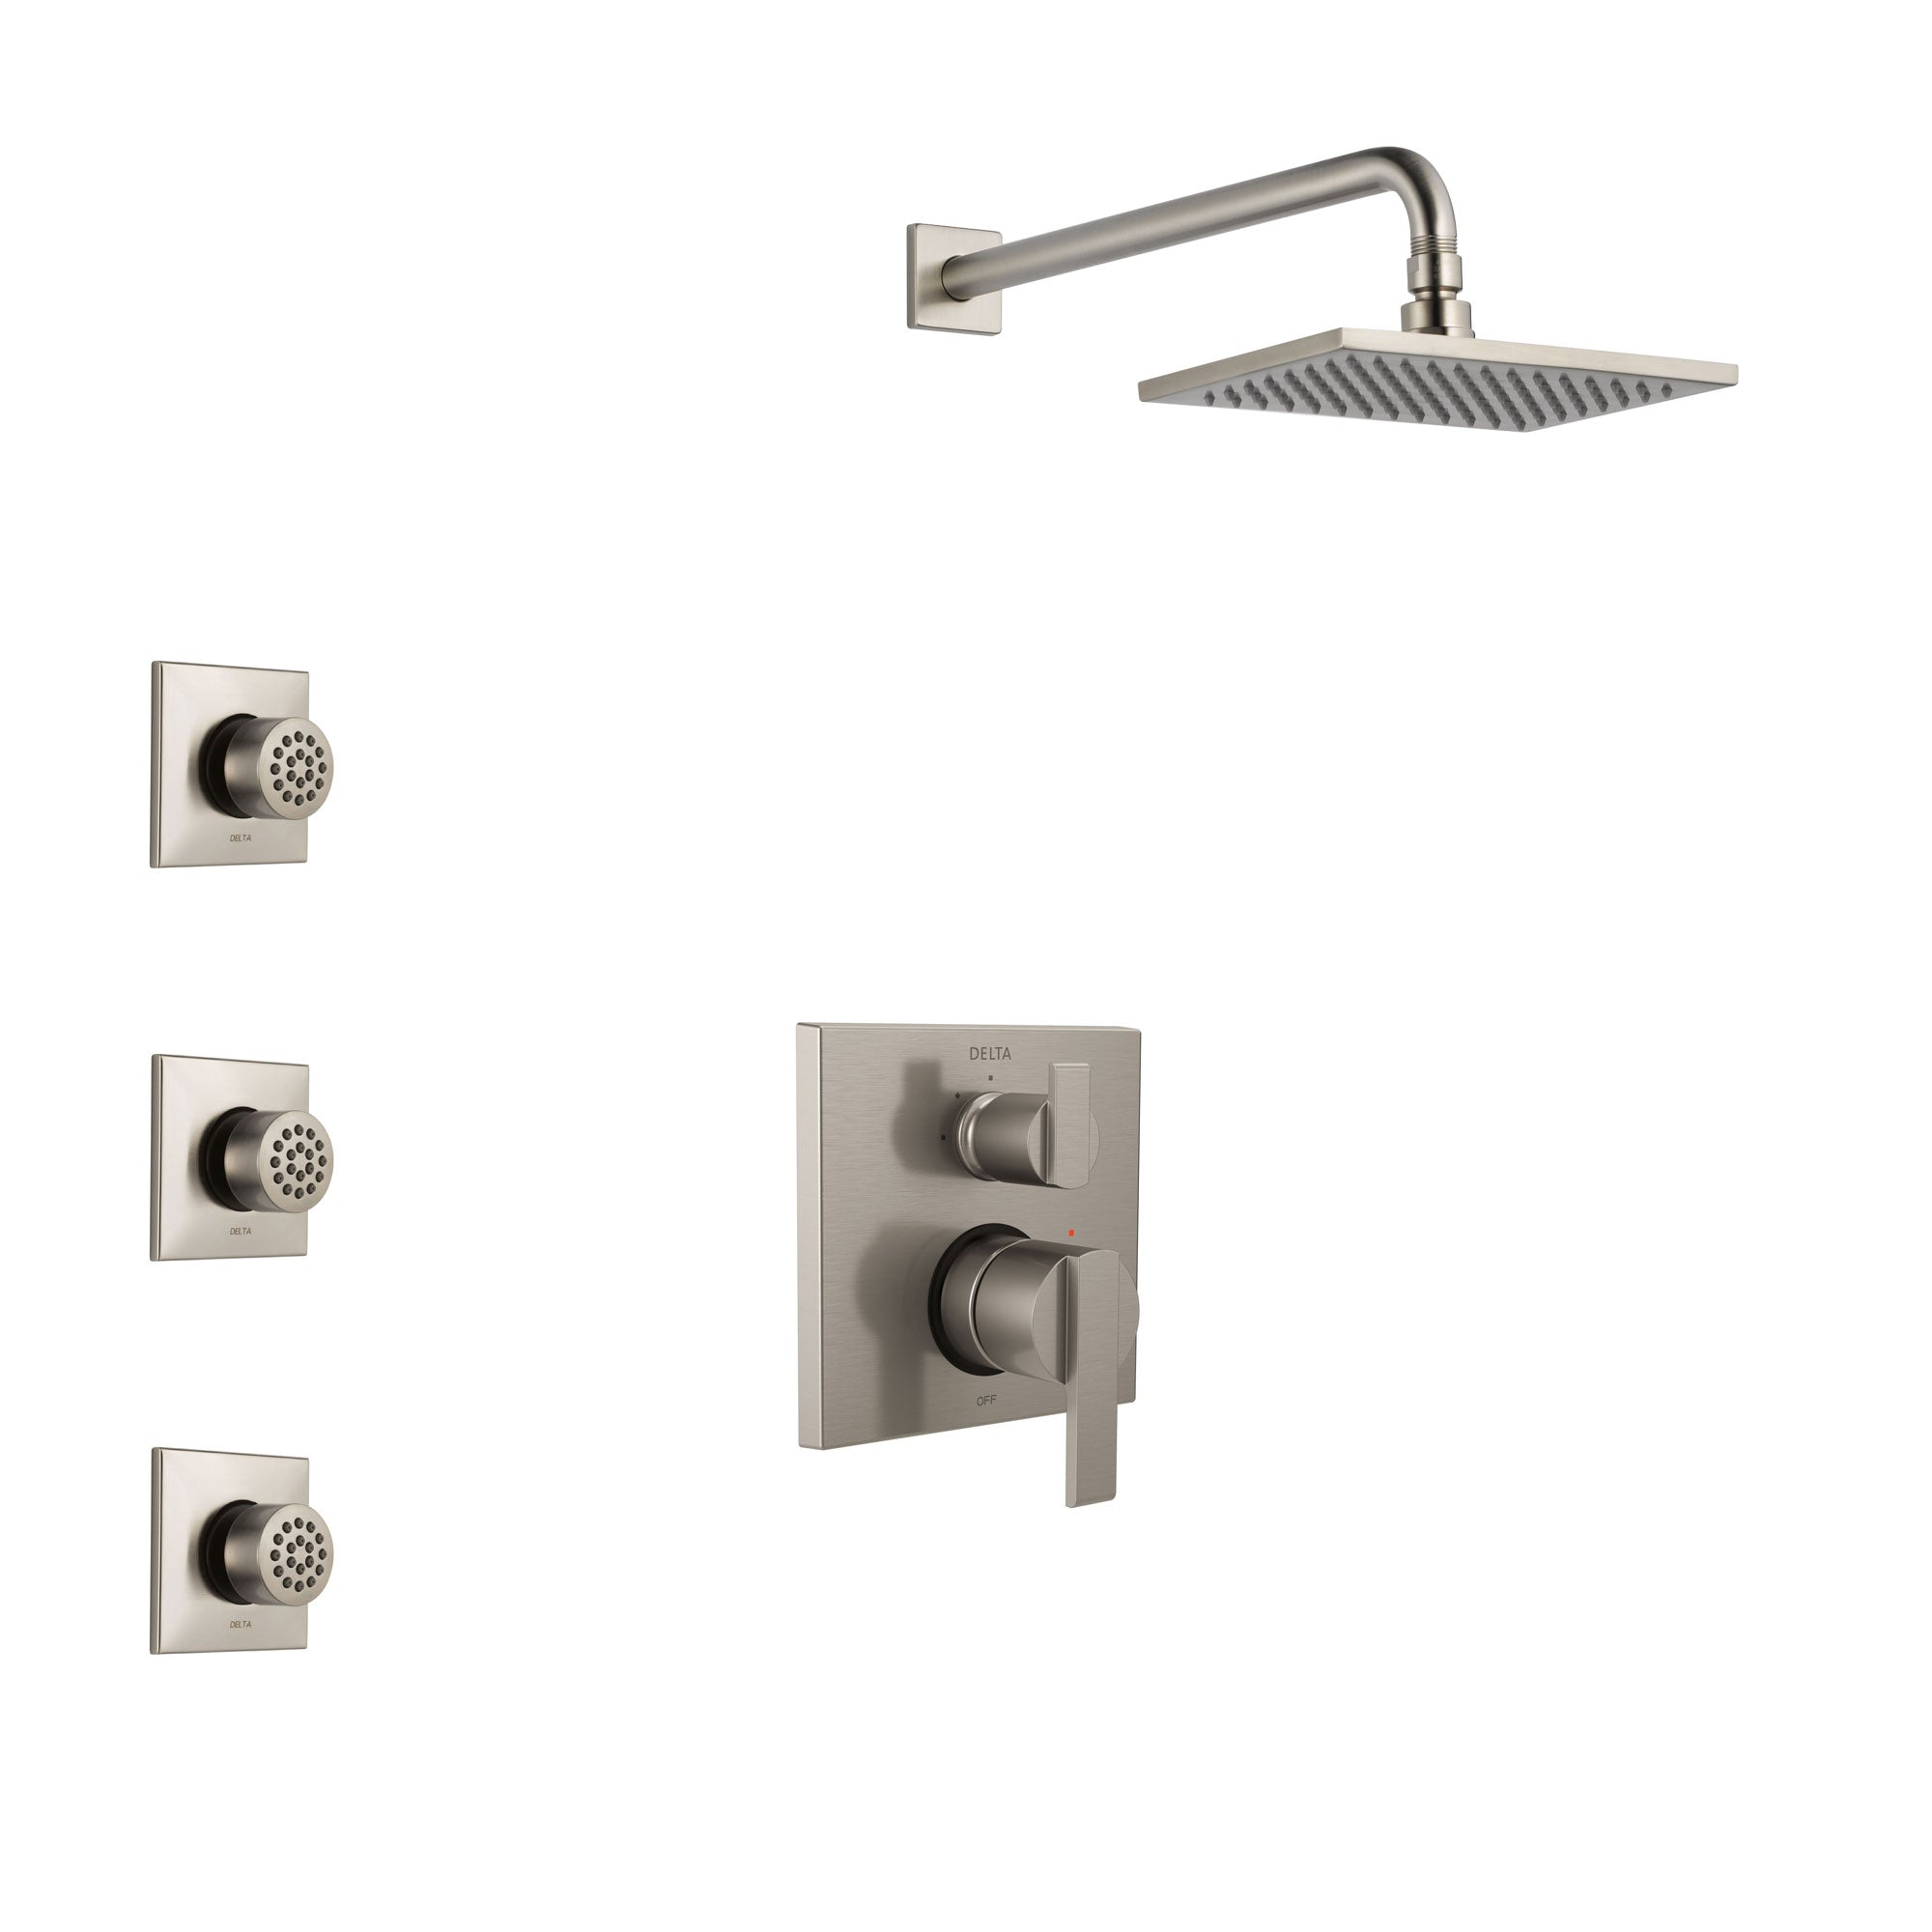 Delta Ara Stainless Steel Finish Shower System with Control Handle, Integrated 3-Setting Diverter, Showerhead, and 3 Body Sprays SS24867SS9